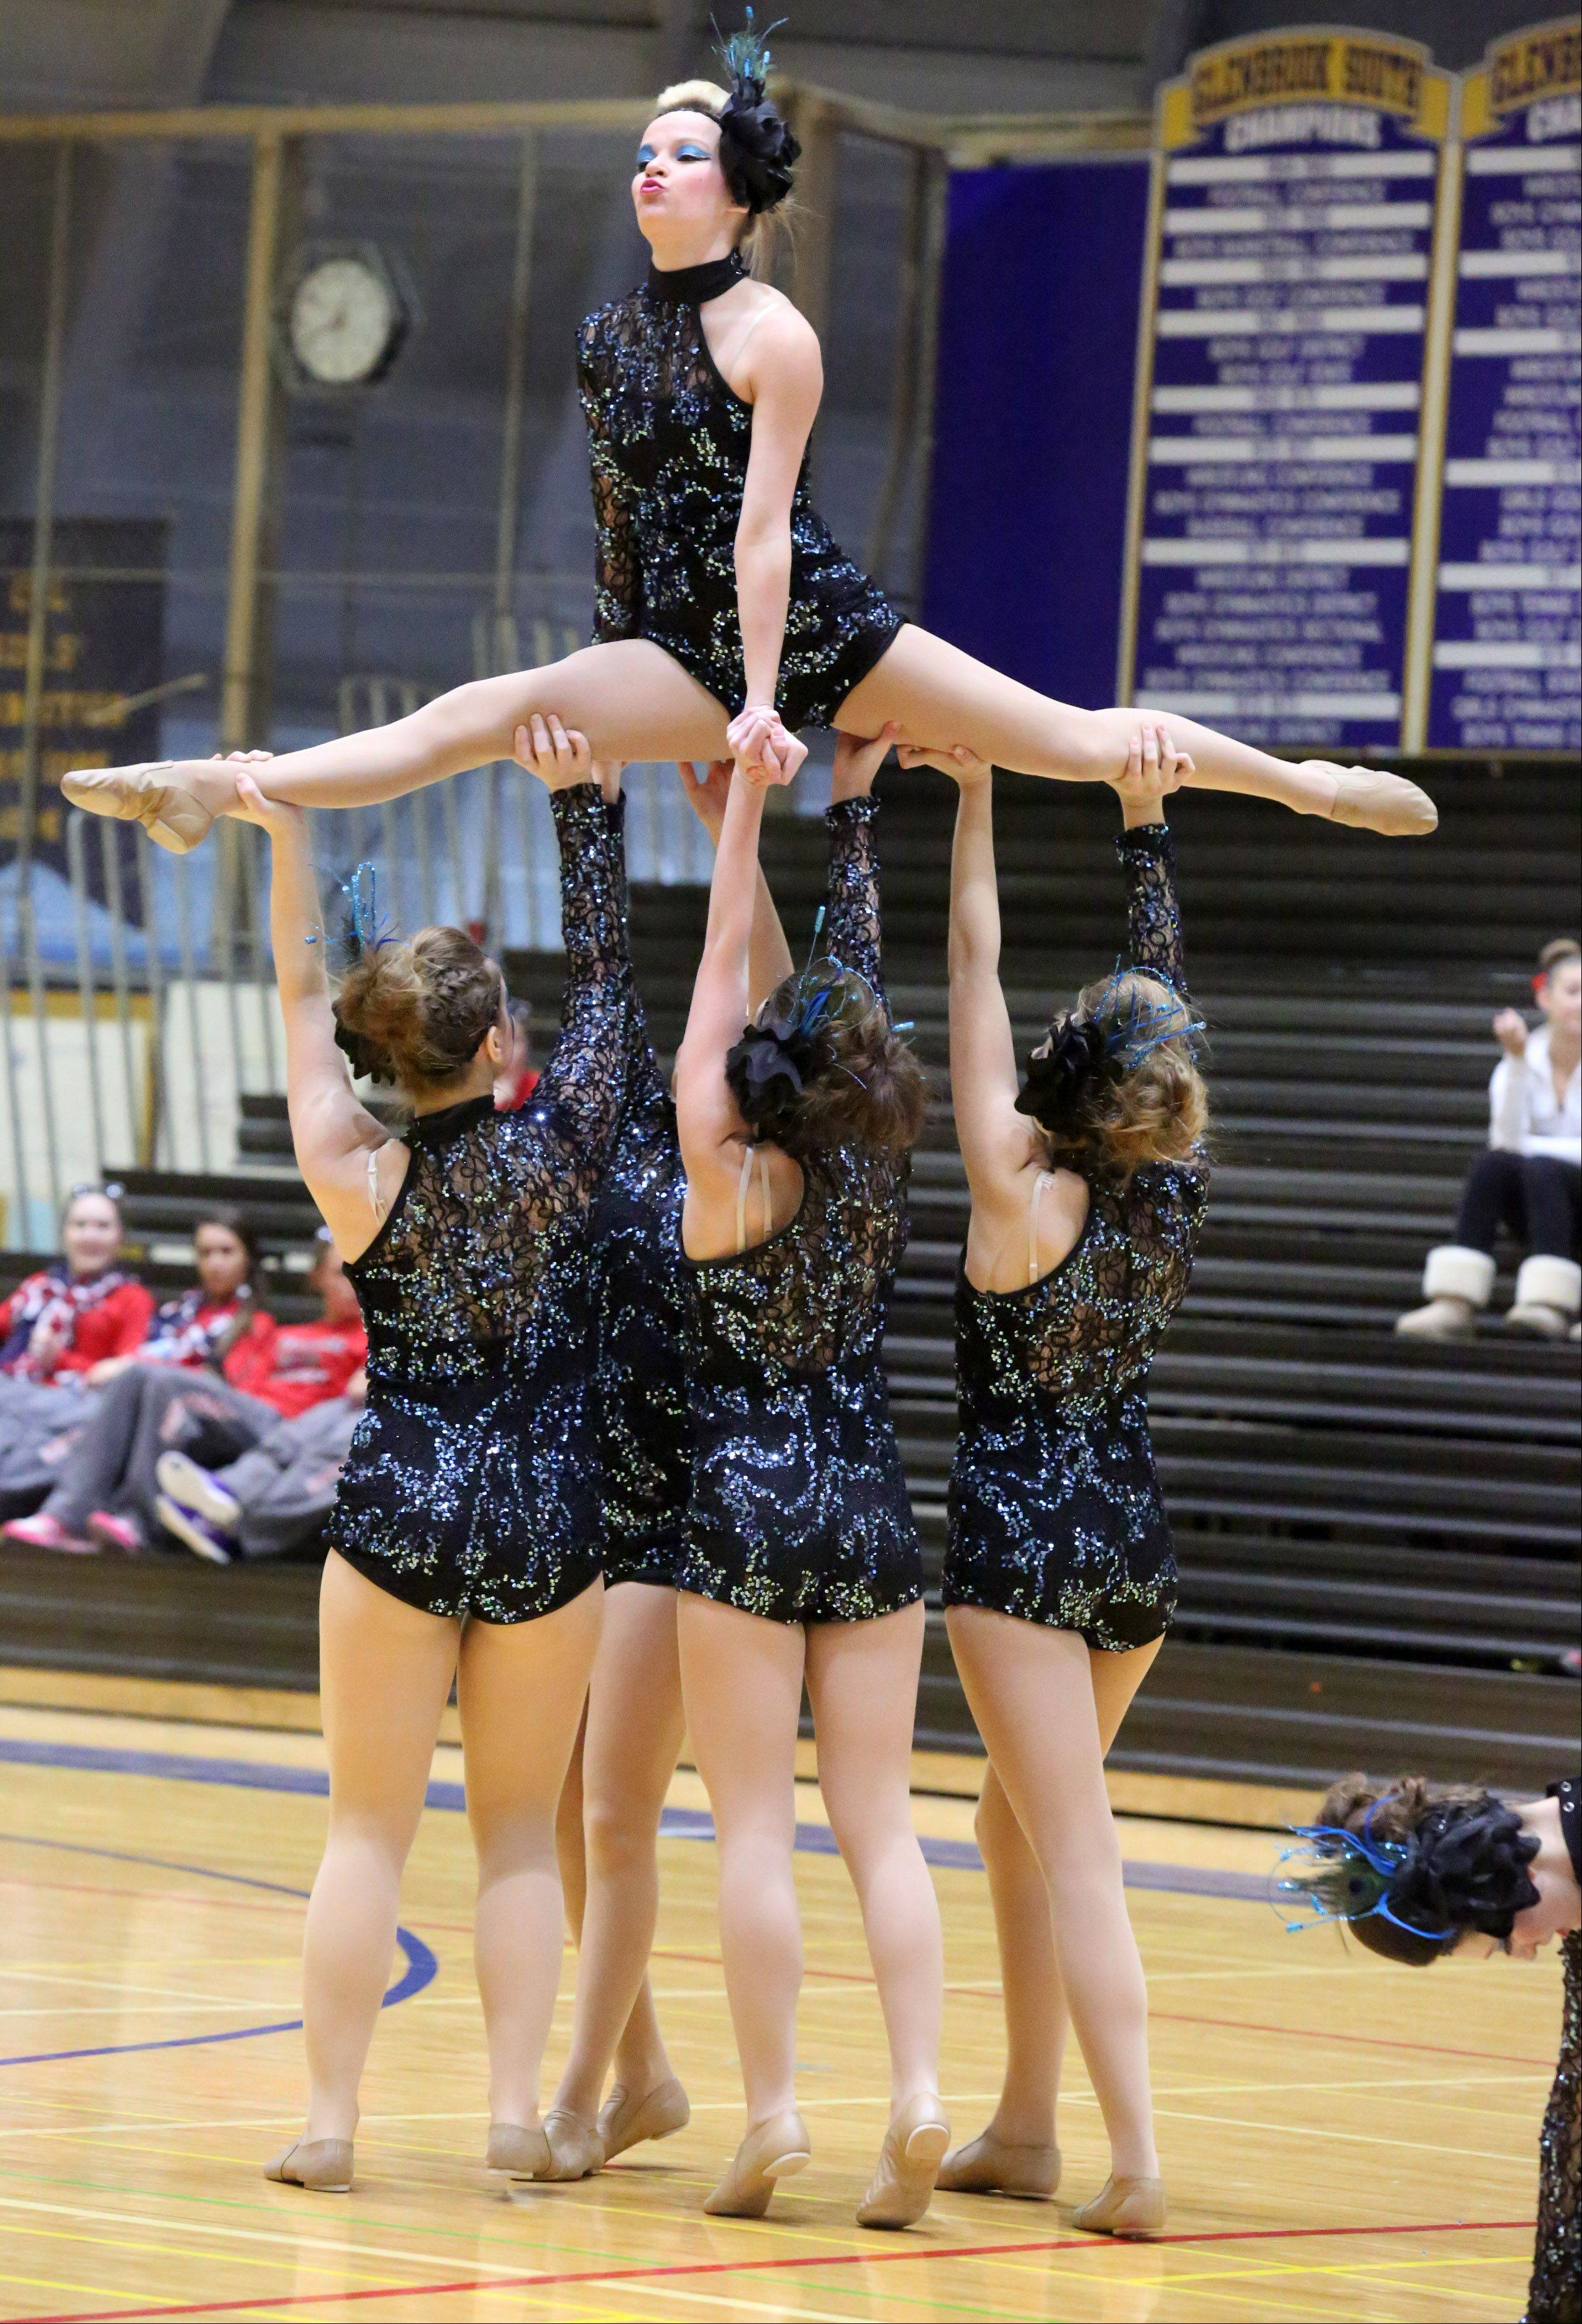 Lakes High School's dance team competes at the IHSA competitive dance sectional at Glenbrook South High School on Saturday in Glenview.